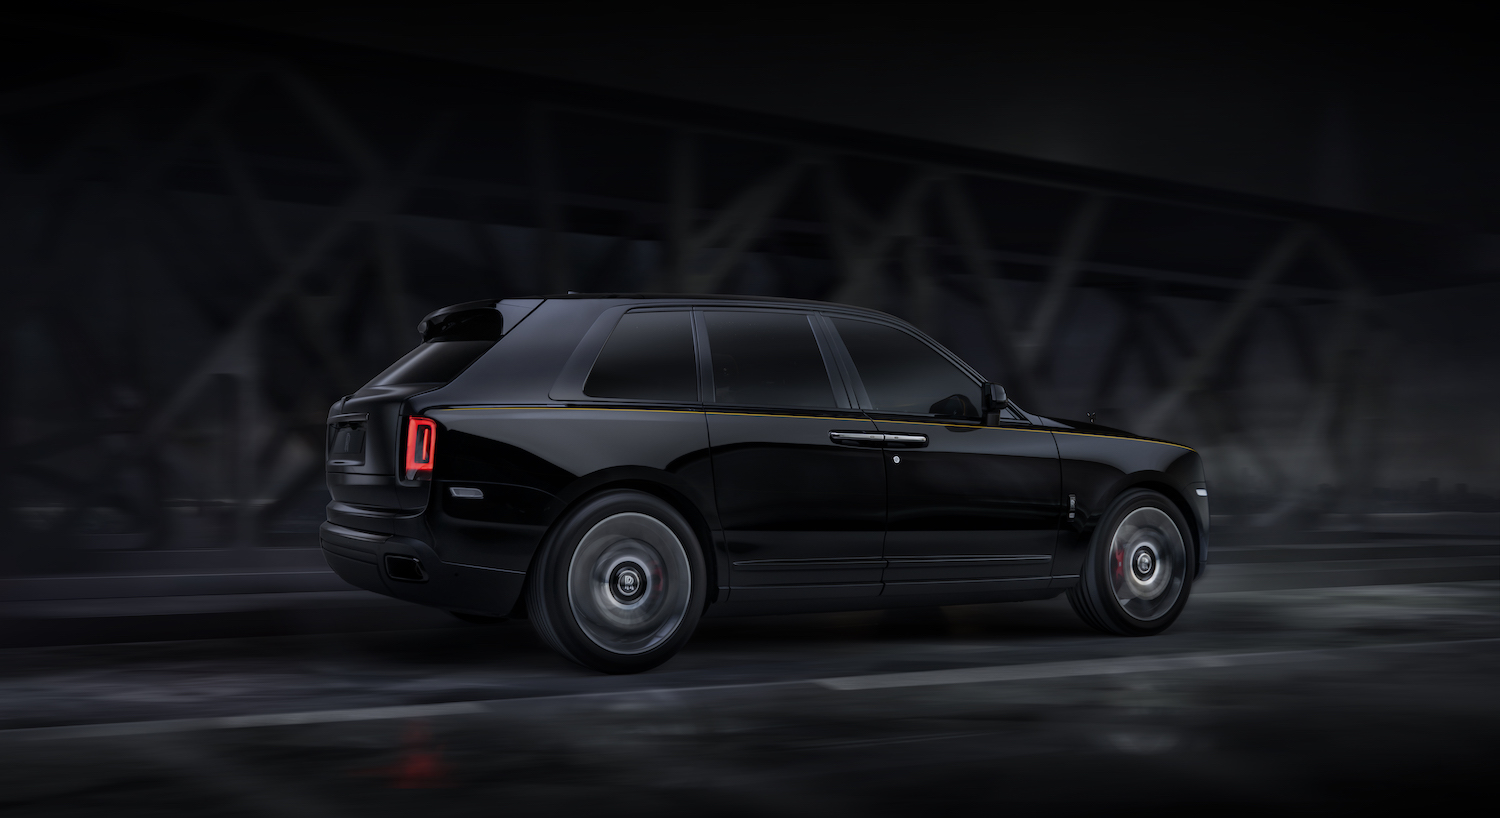 The Rolls-Royce Black Badge Cullinan is $382K of Dark Knight SUV thumbnail